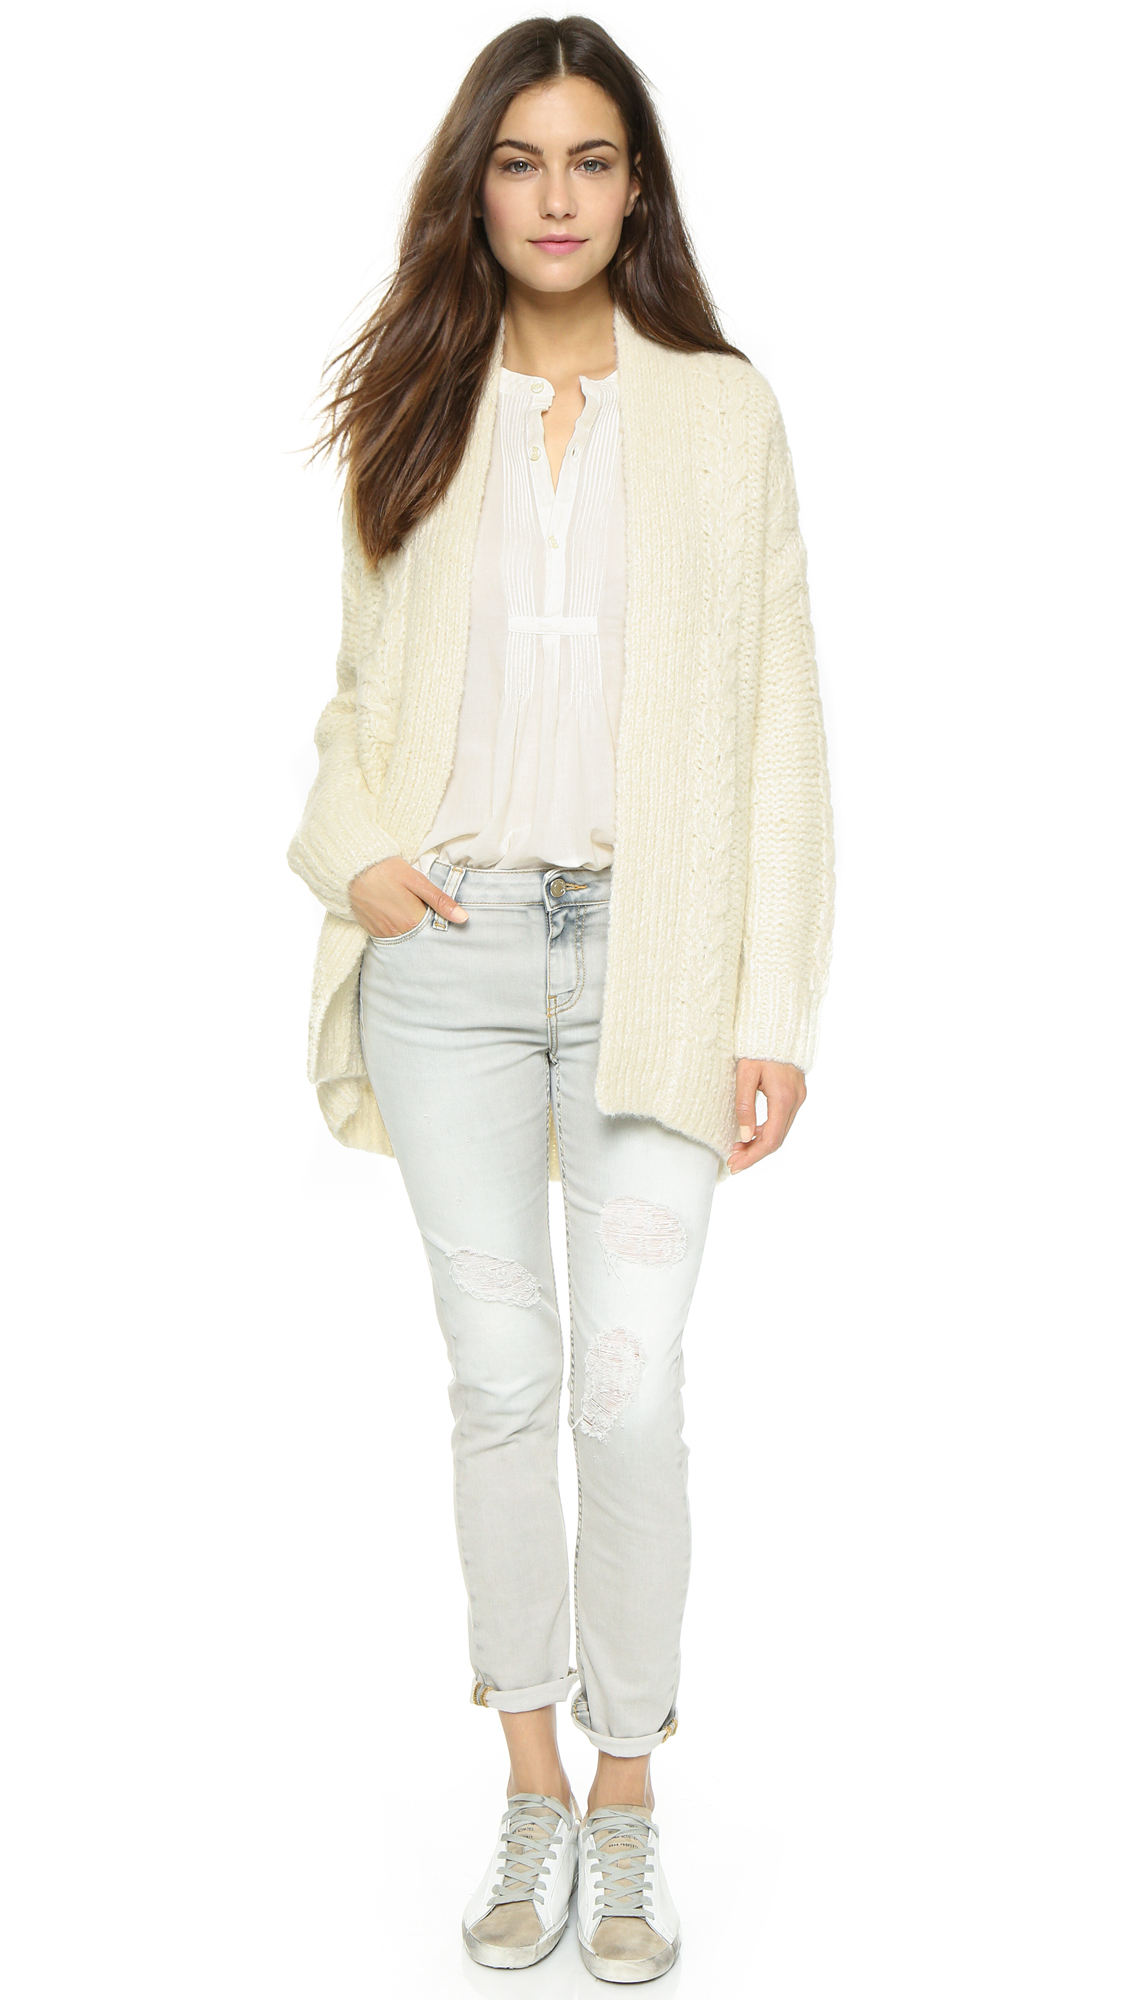 Nili lotan Long Sleeve Kimono Cardigan Sweater - Ivory in White | Lyst